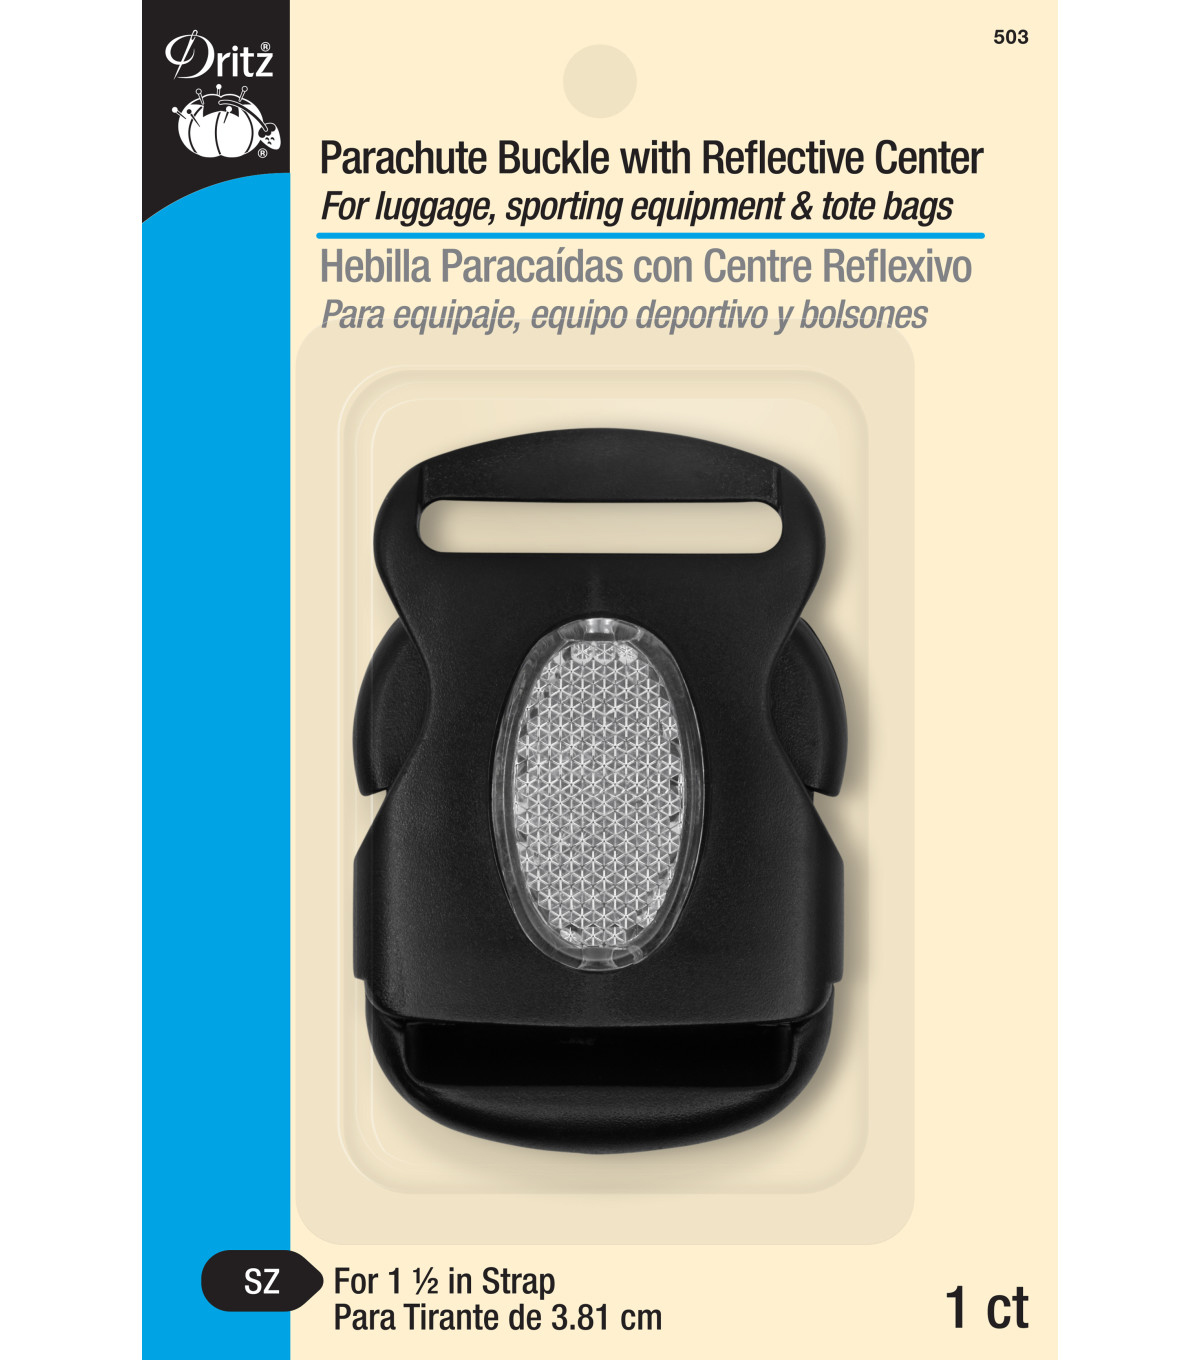 Dritz Parachute Buckle With Reflective Center Black